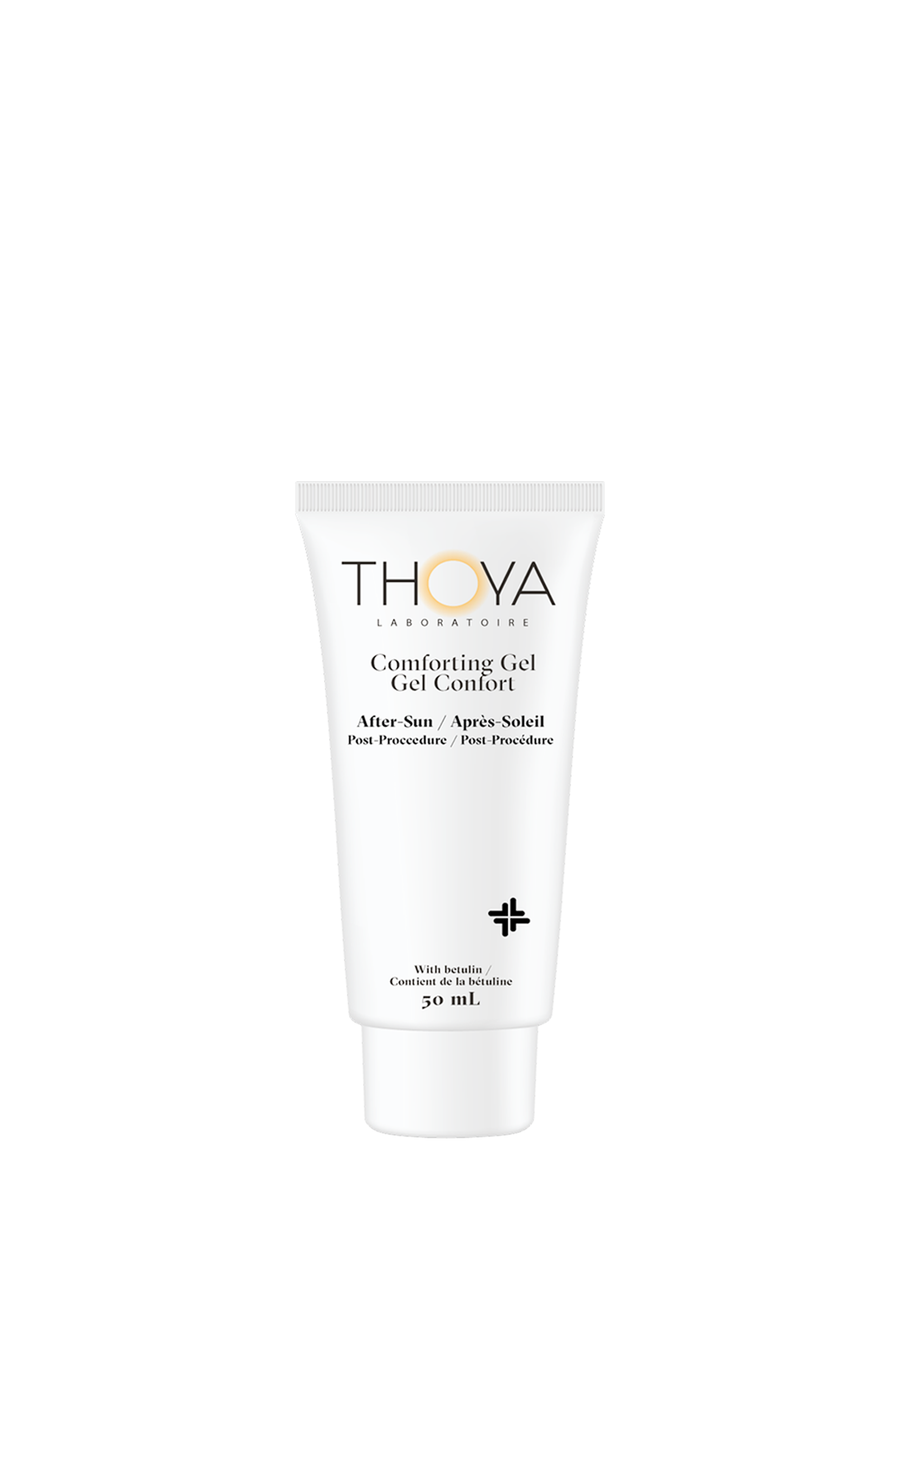 Thoya All Comforting Gel - After sun – Post procedure -Best all natural skincare - Hypoallergernic - Dermatologist tested - Fragrance free